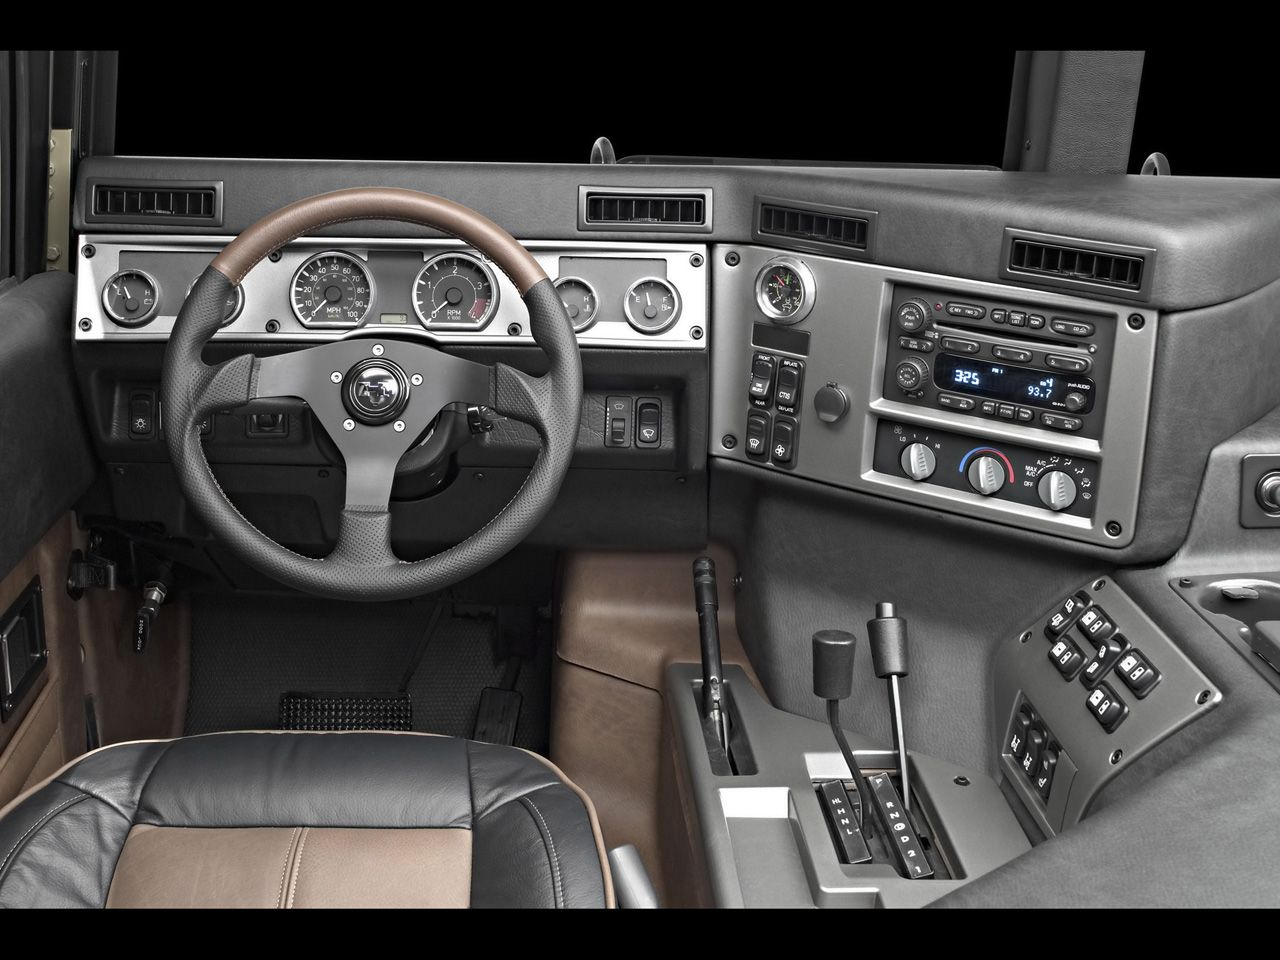 Hummer H1 How S The View From The Driver Seat Hummer Interior Hummer Cars Hummer H1